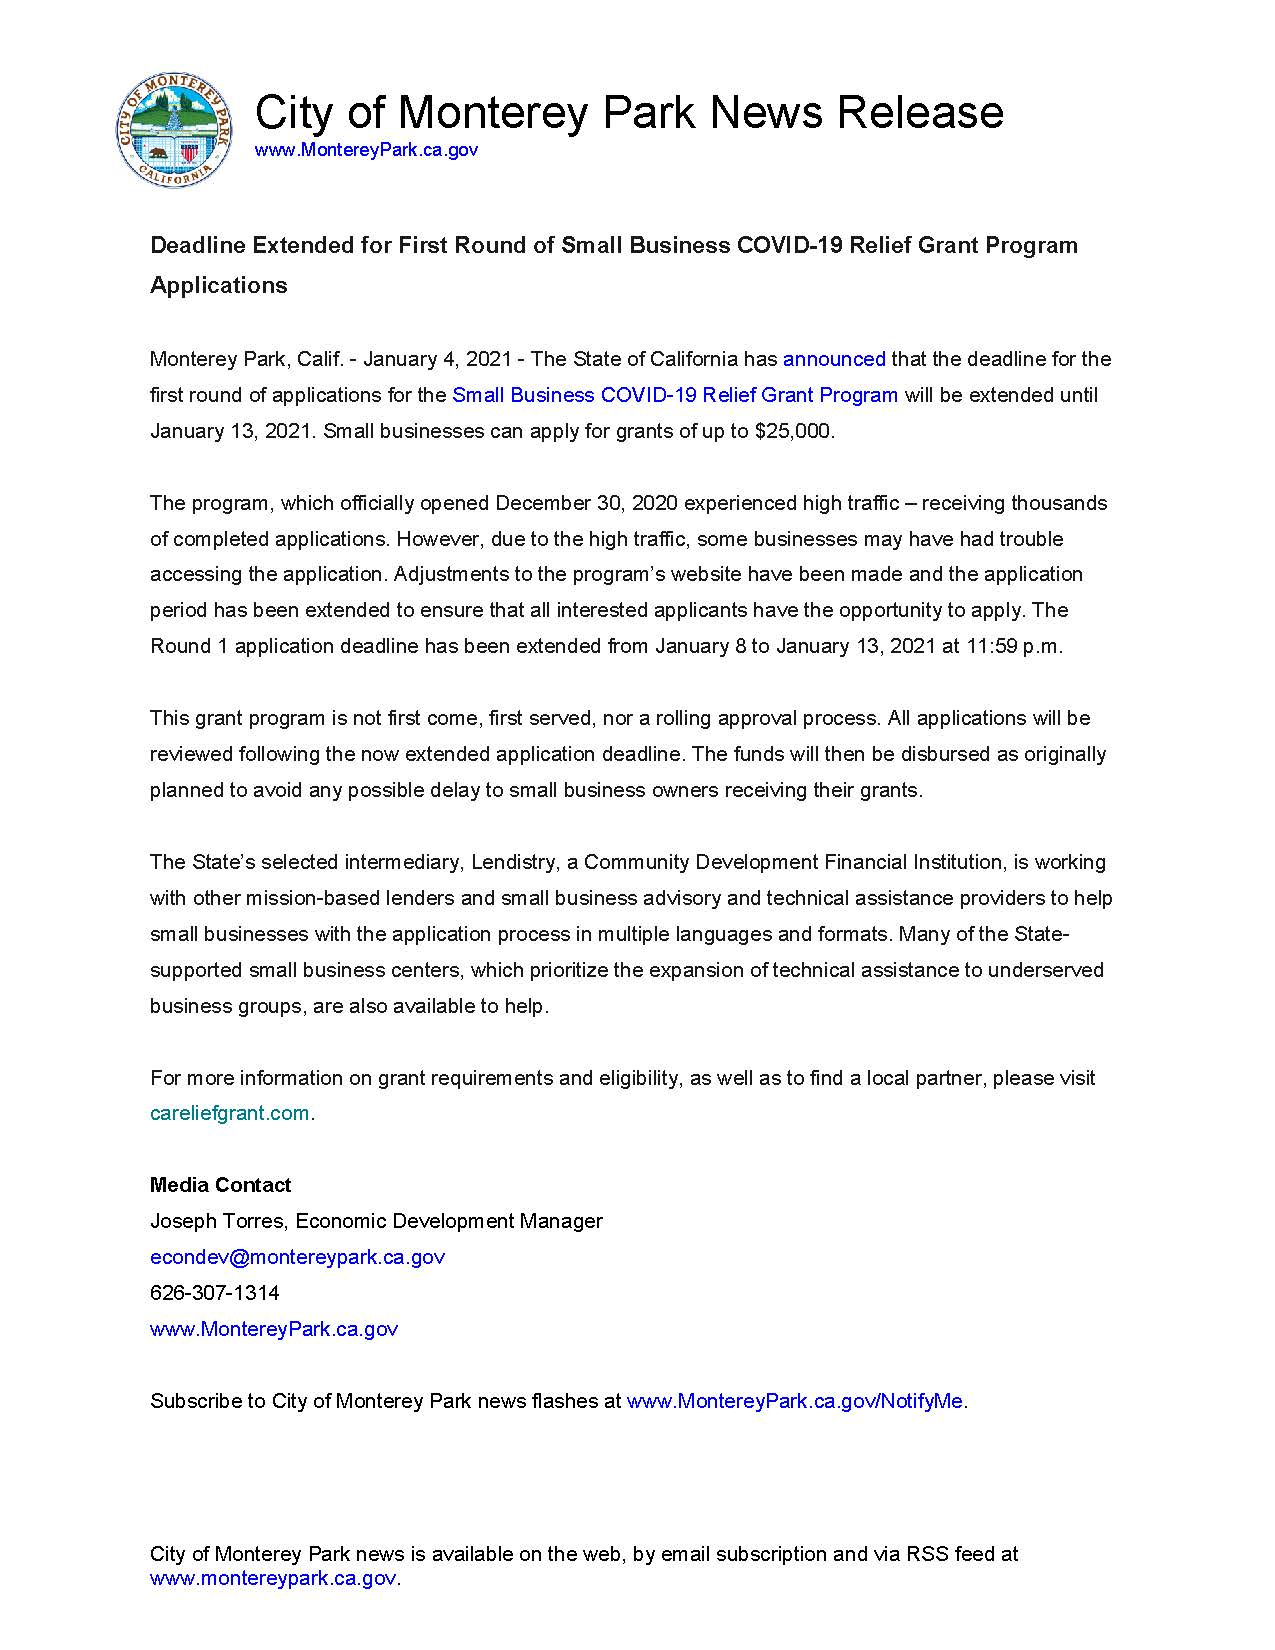 MPK News Release - CA COVID19 Grant Program Round 1 Deadline Extended to 1-13-21